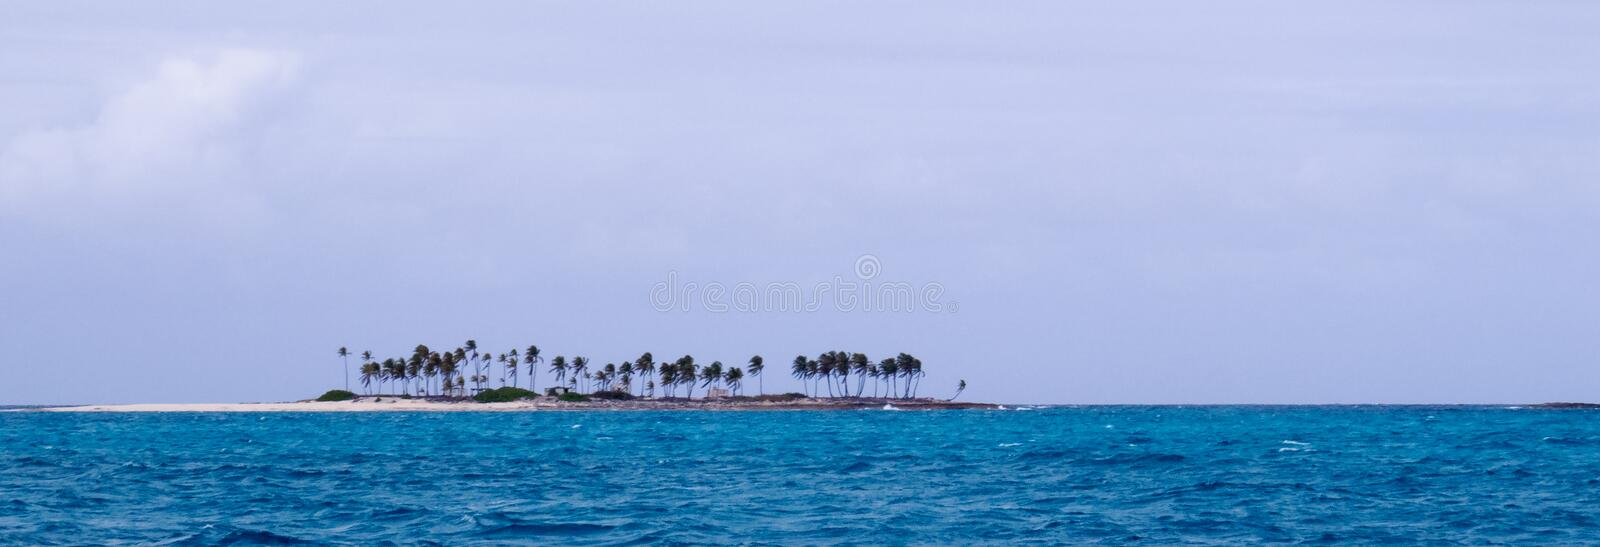 Tropical island isolated in the middle of the water. Panoramic photo: Tropical island with a lot of palm trees isolated in the middle of the water near Nassau in stock photos